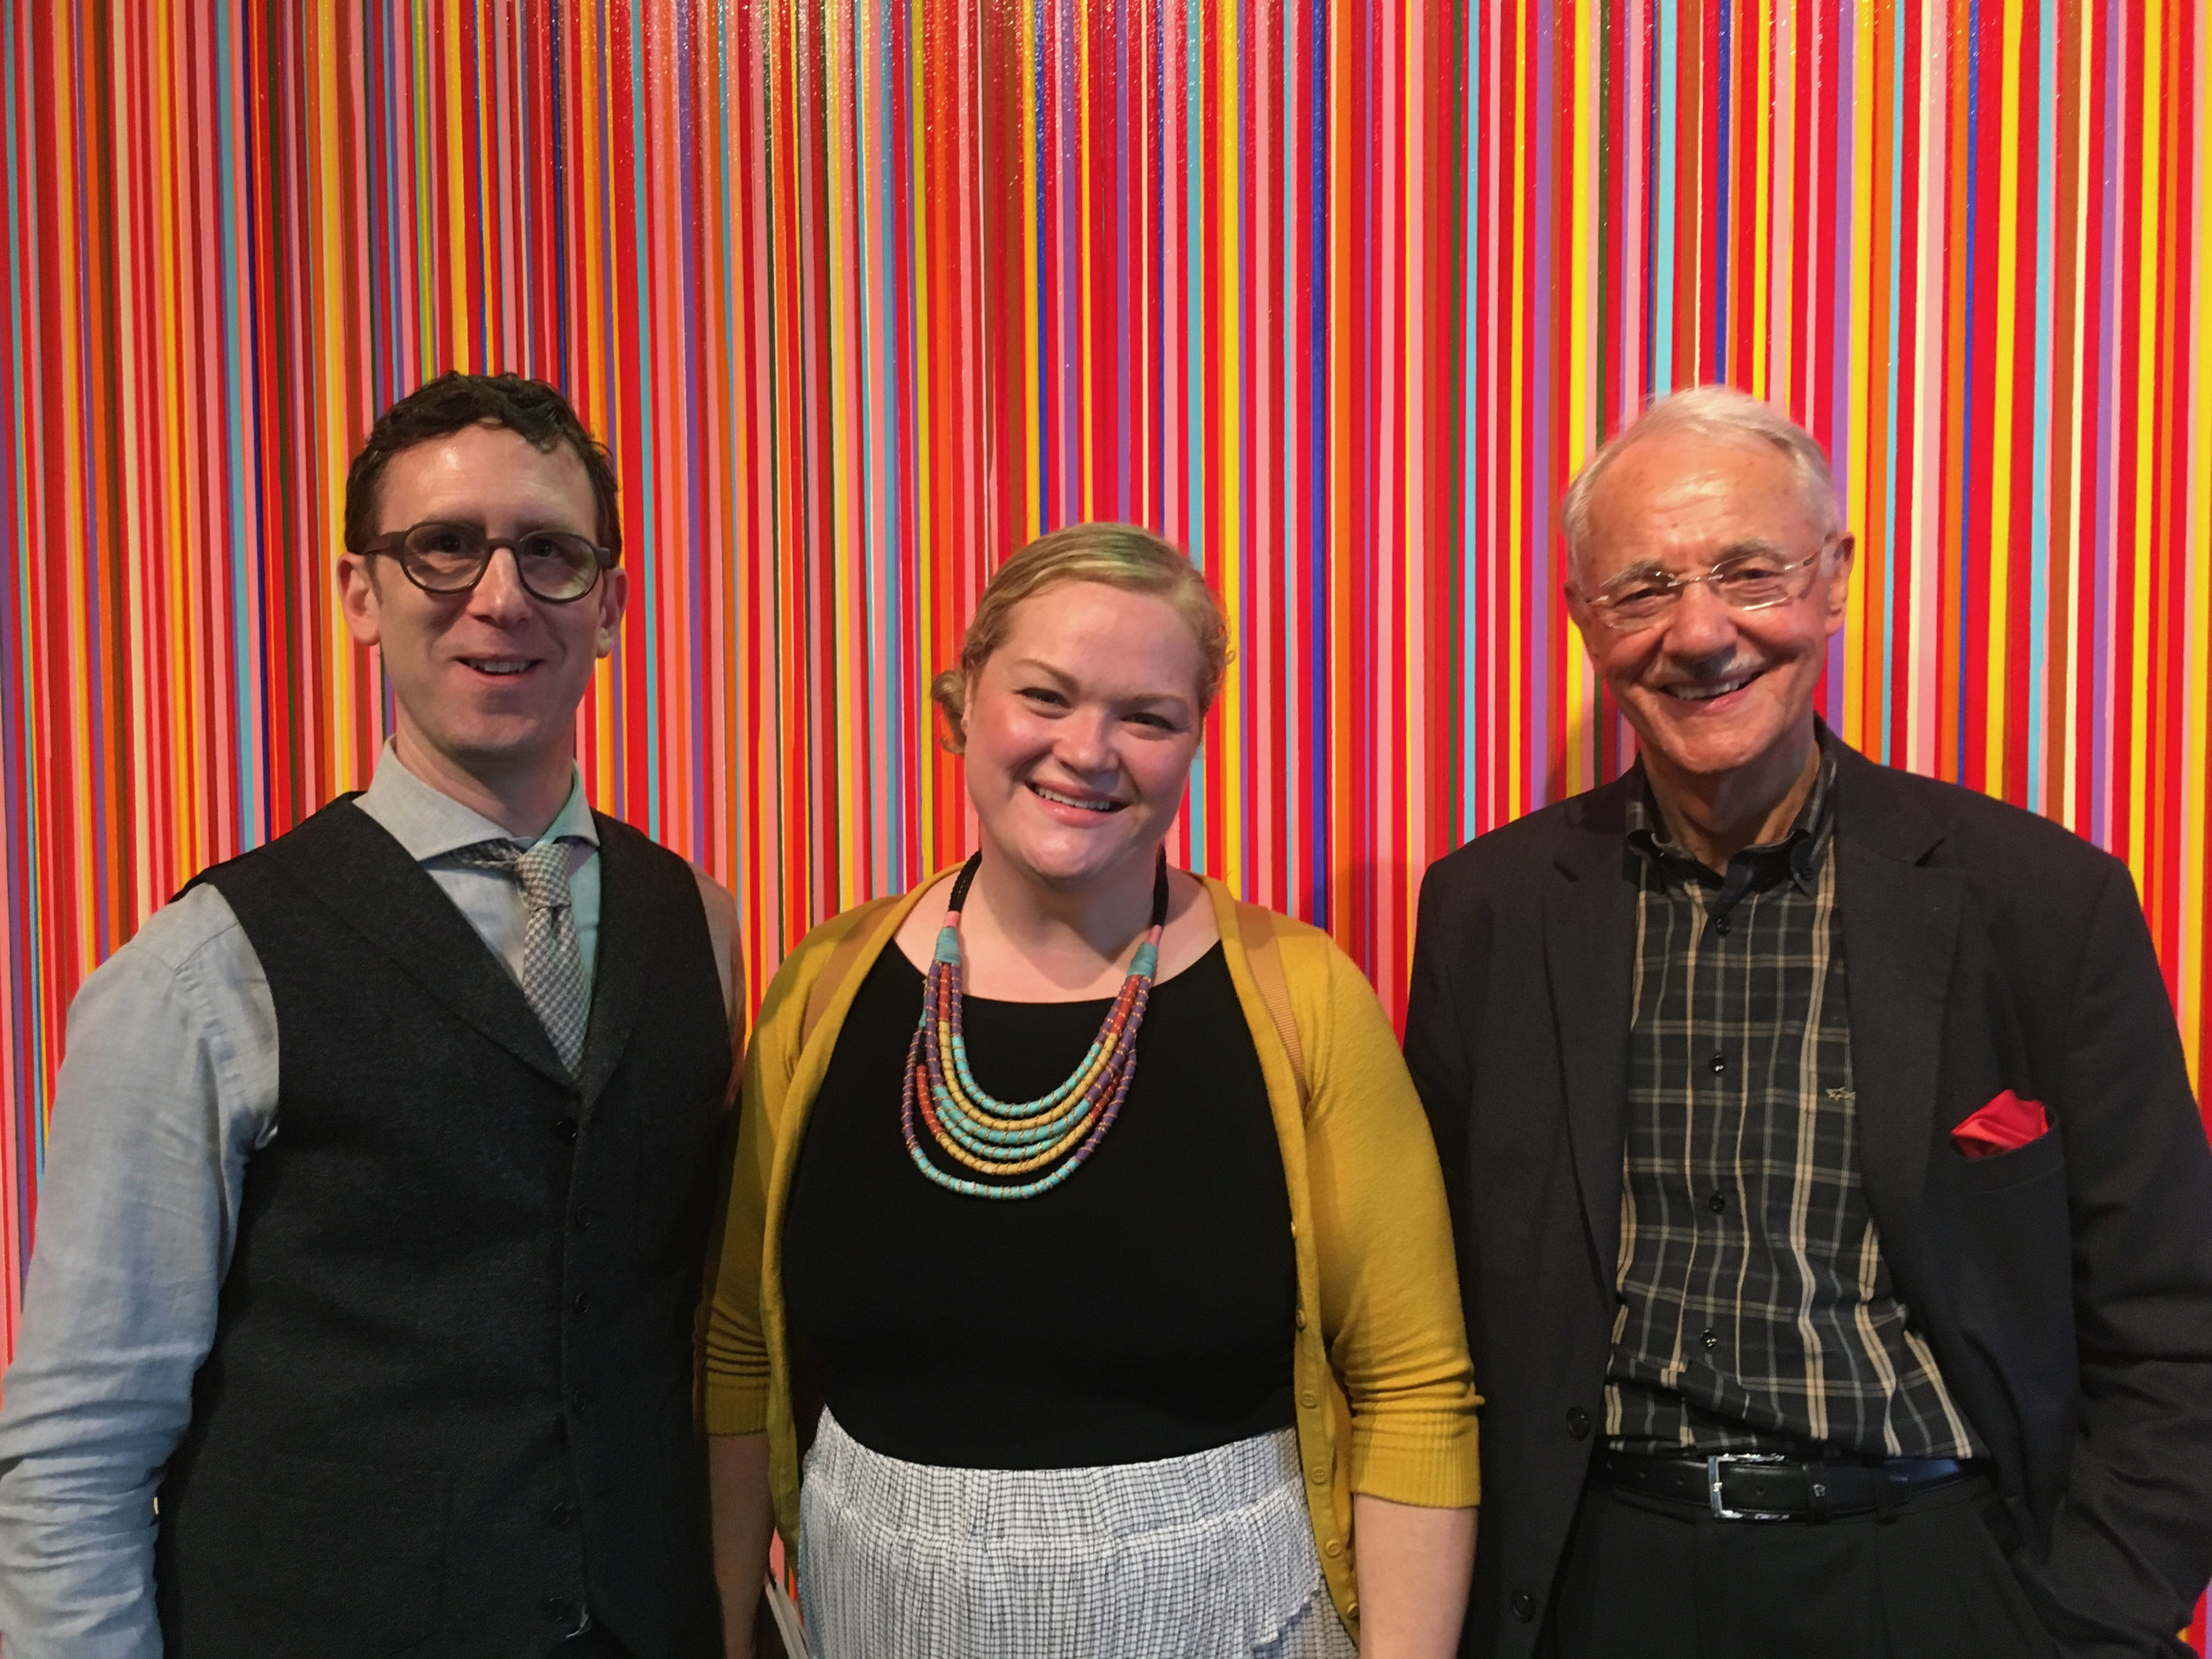 John Silvis, WSJ journalist Kelly Crow Hayes and Mr. Karlheinz Essl at The Armory Show NY Pier 92. Background: Work on canvas by Jun Kaneko